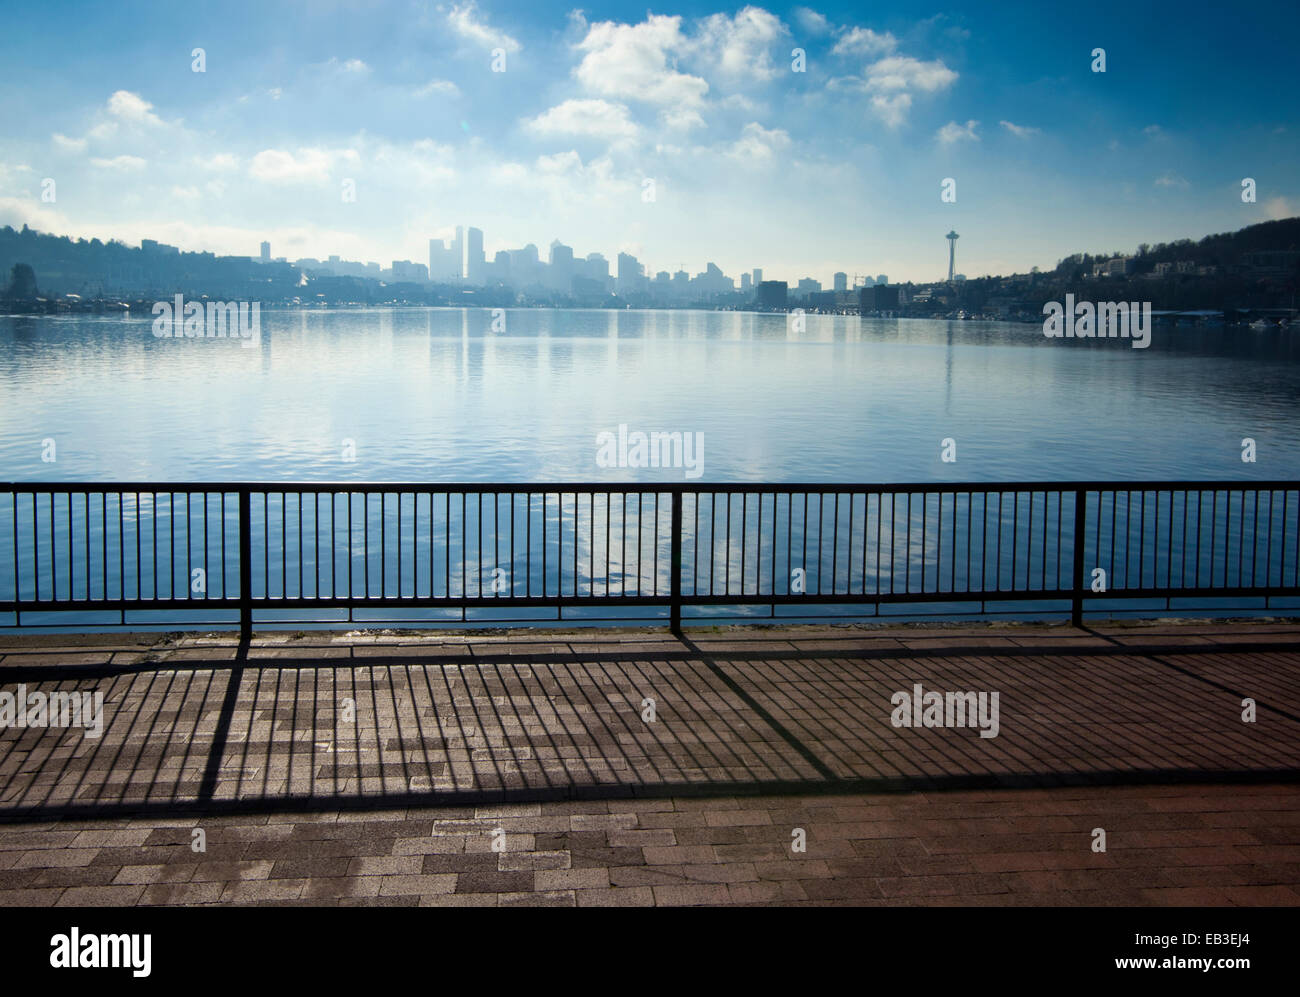 Bannister surplombant les toits de la ville de Seattle Waterfront urbain, Washington, United States Photo Stock